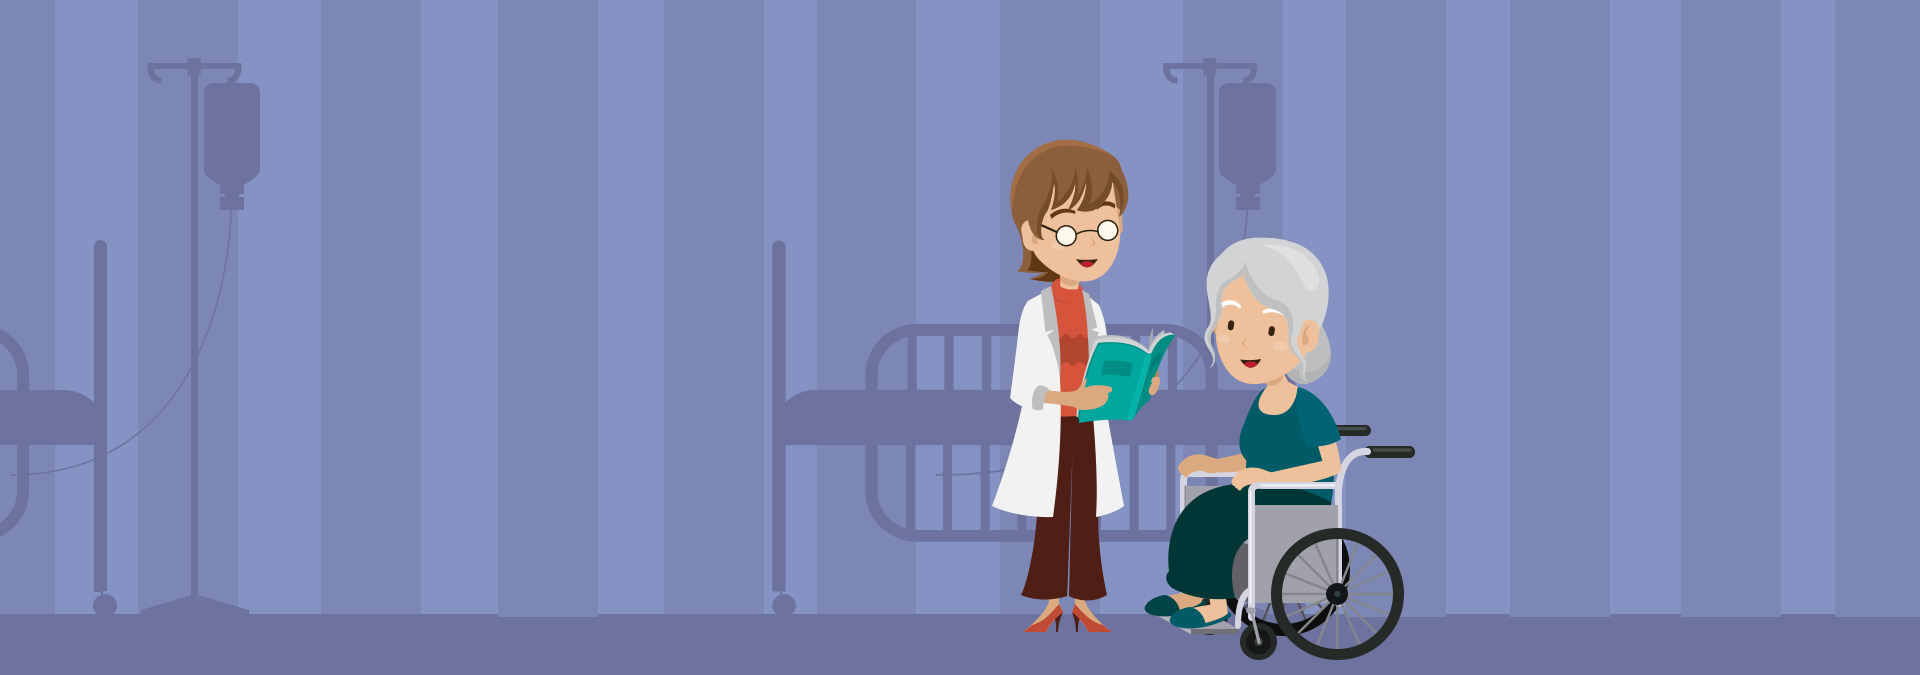 doctor and elderly woman